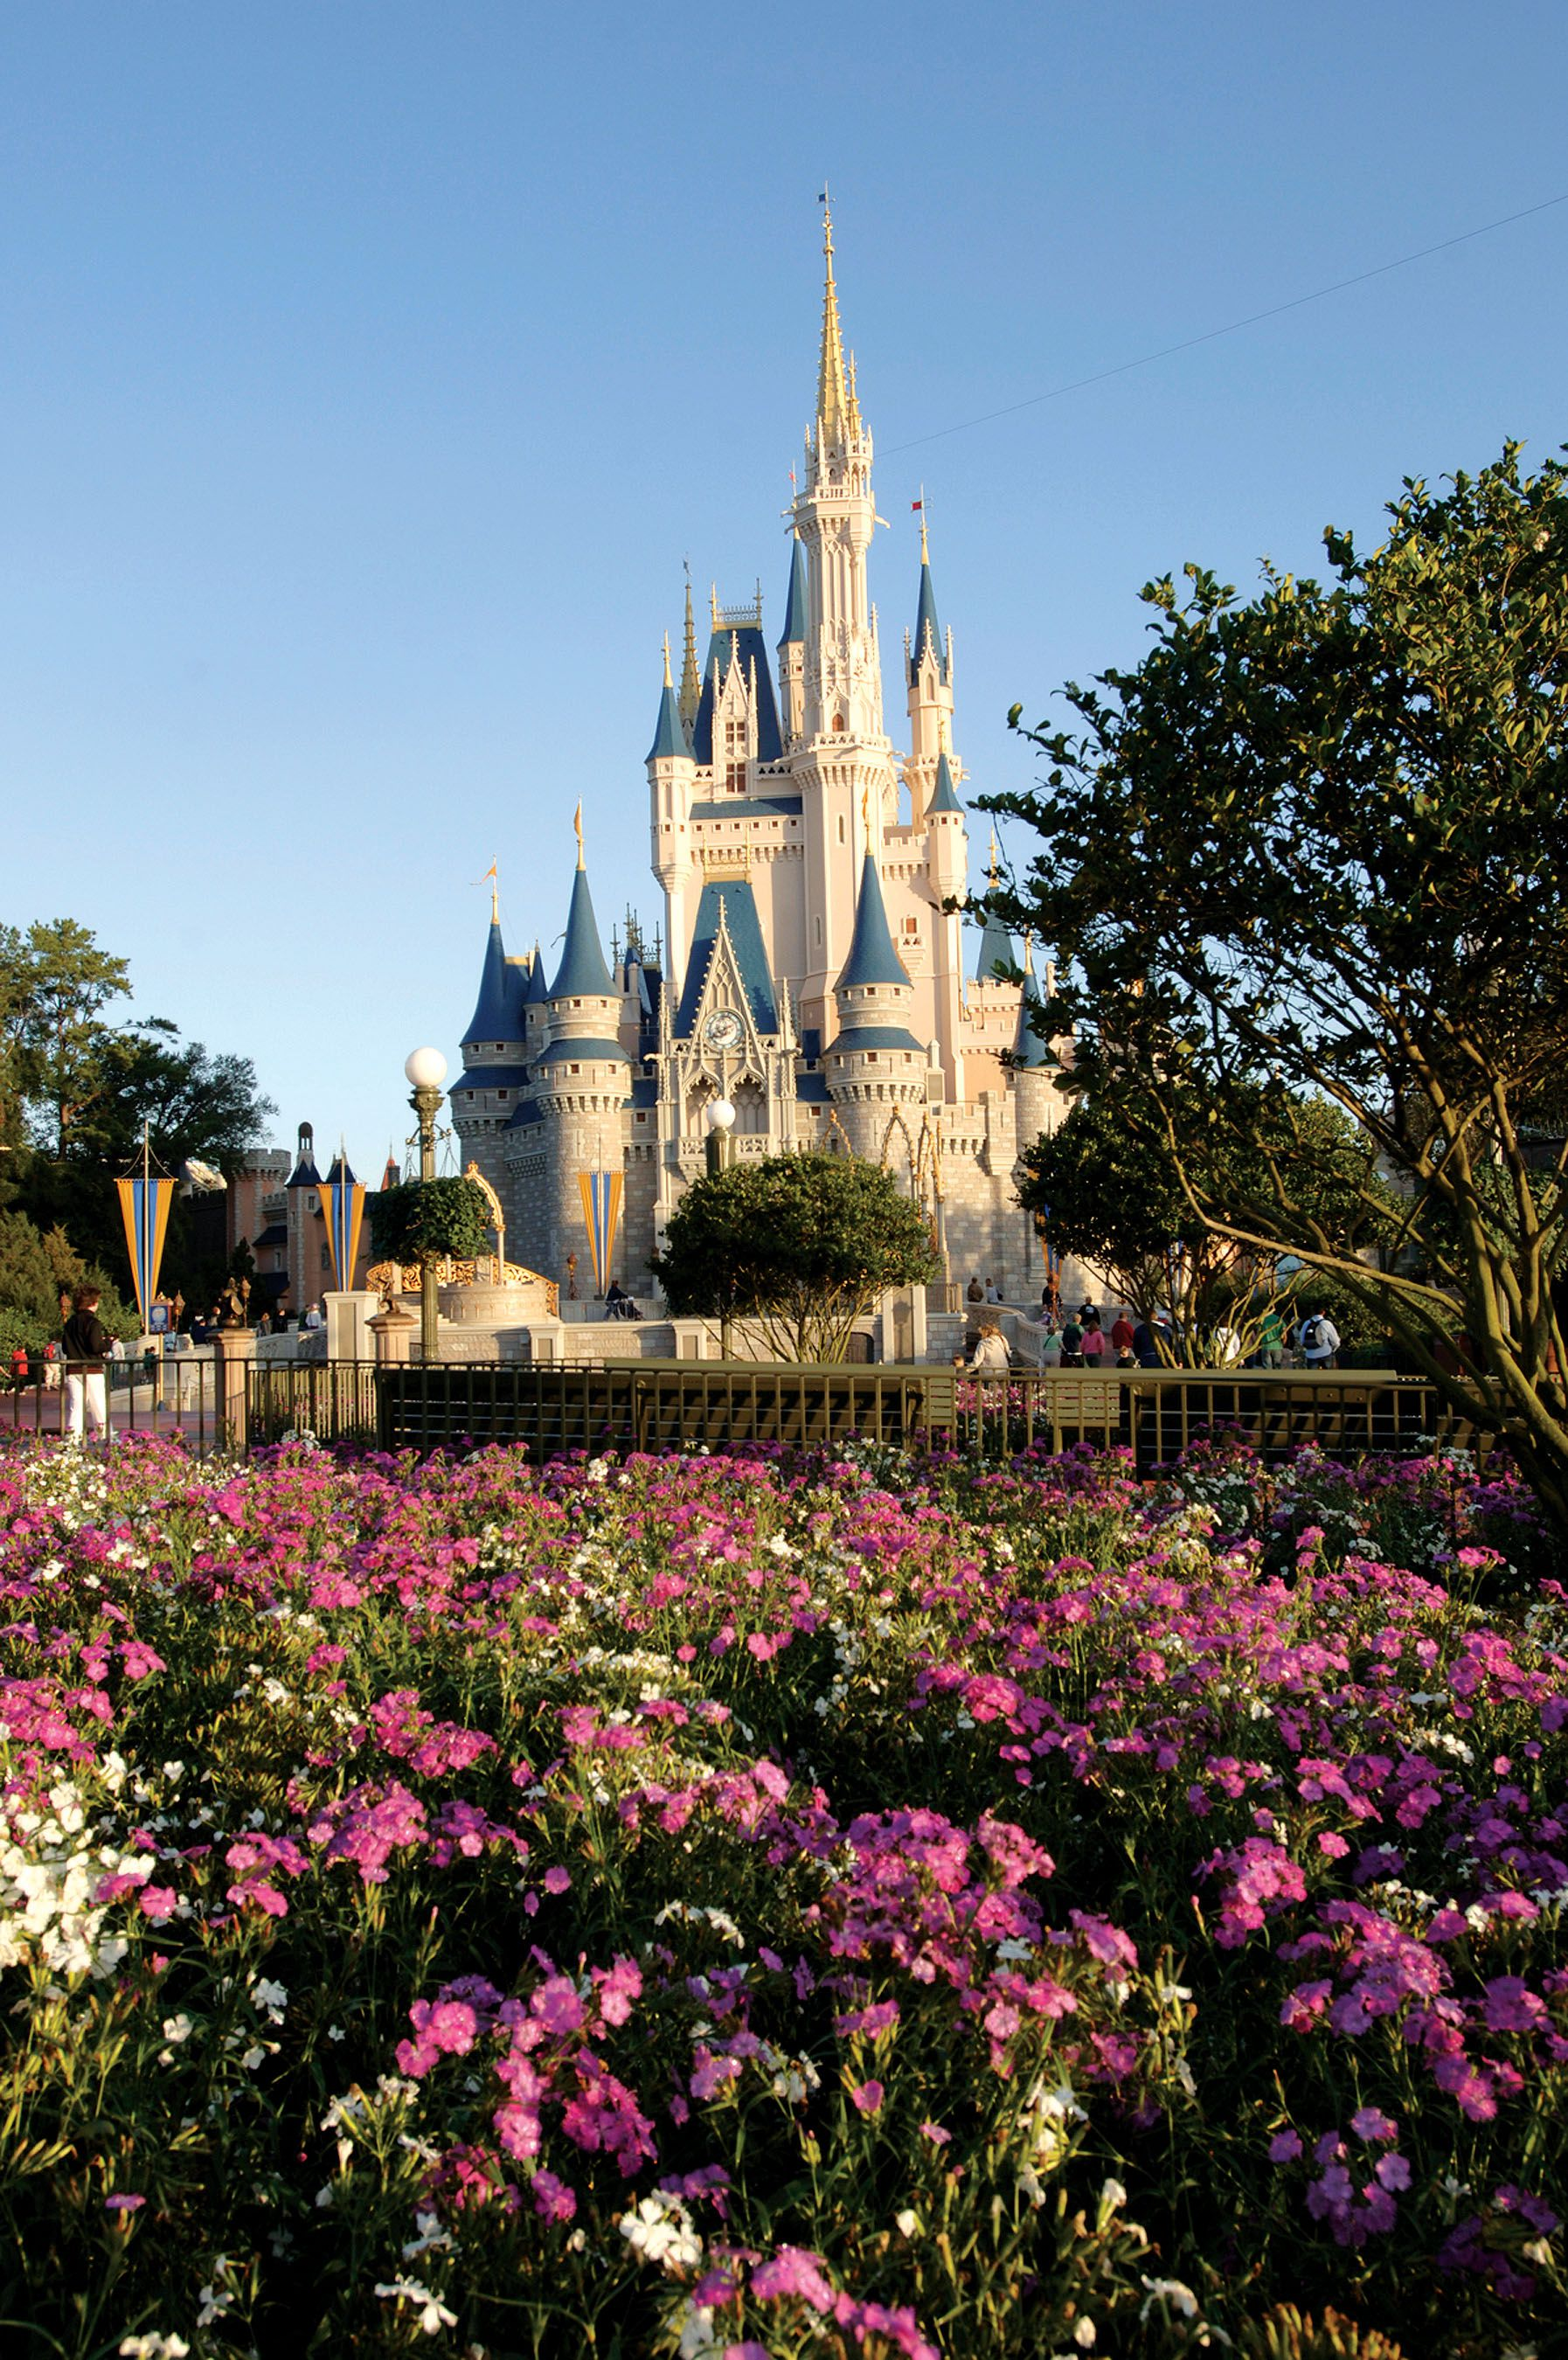 Planning a trip to Disney? Read this first  - The Boston Globe